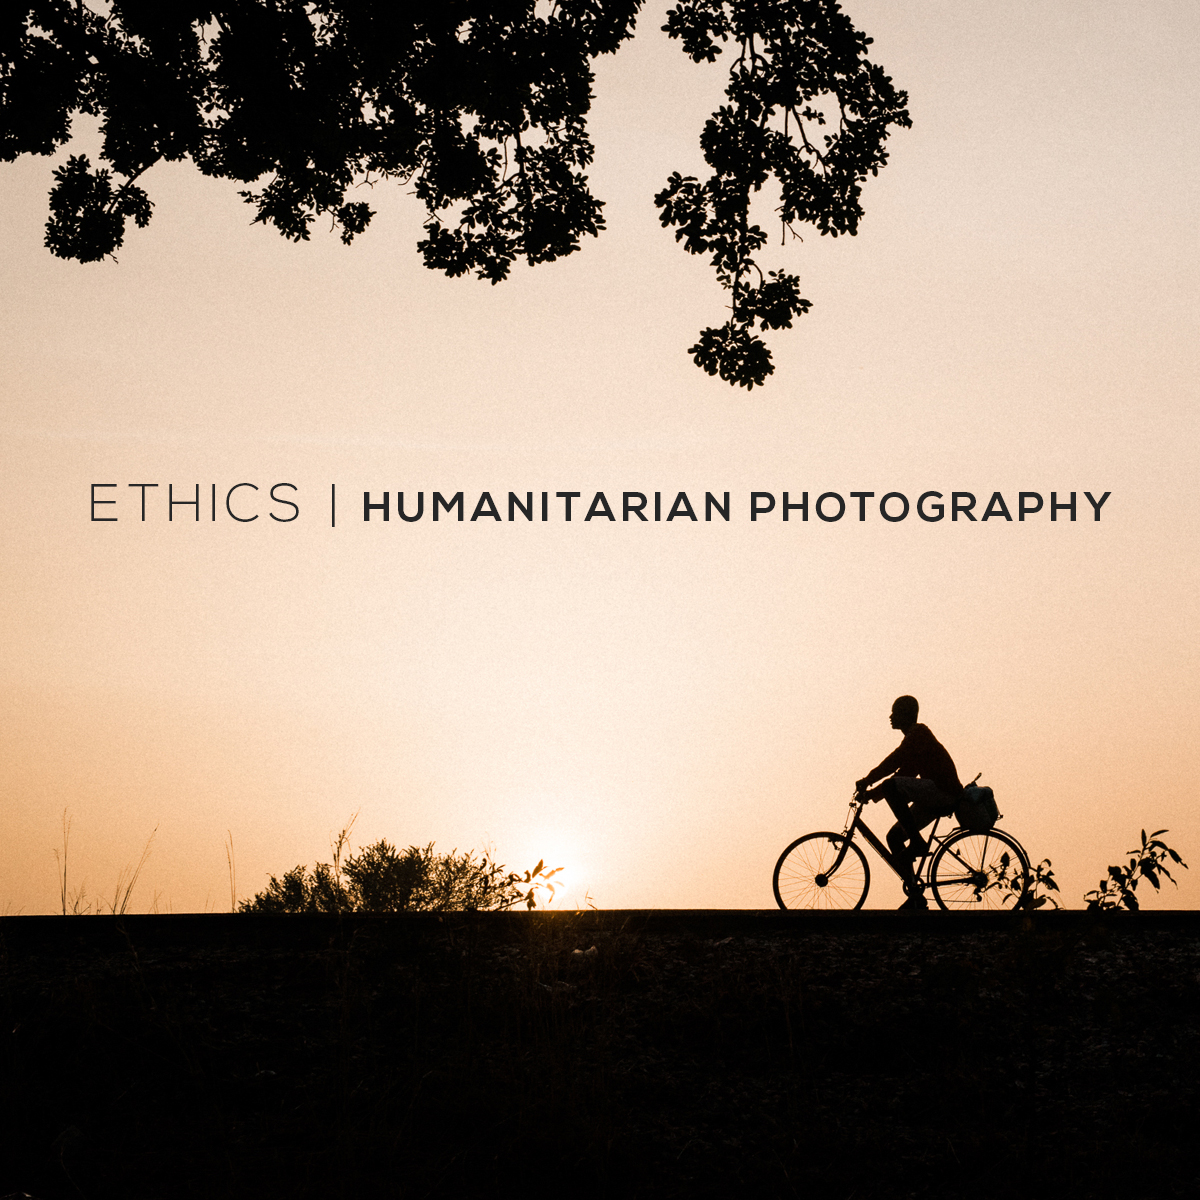 Ethics_Humanitarian_Photography_TaraShupePhotography_024.jpg